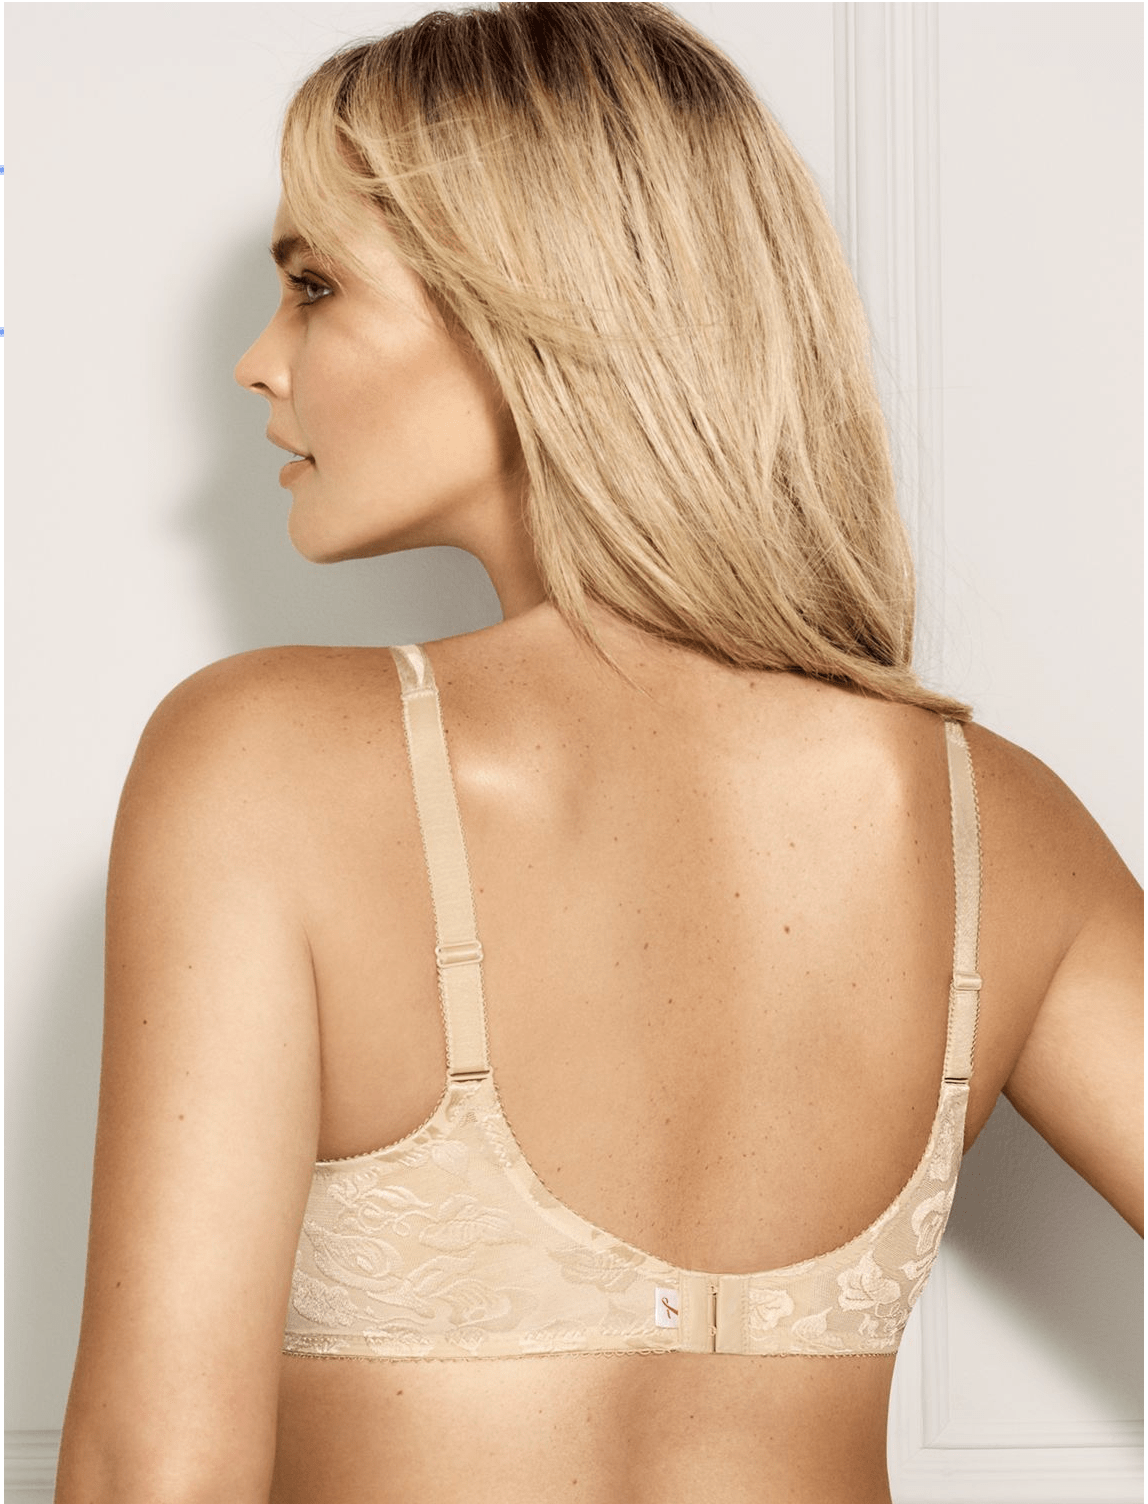 Wacoal Awareness Underwire Bra 85567 Bras Wacoal